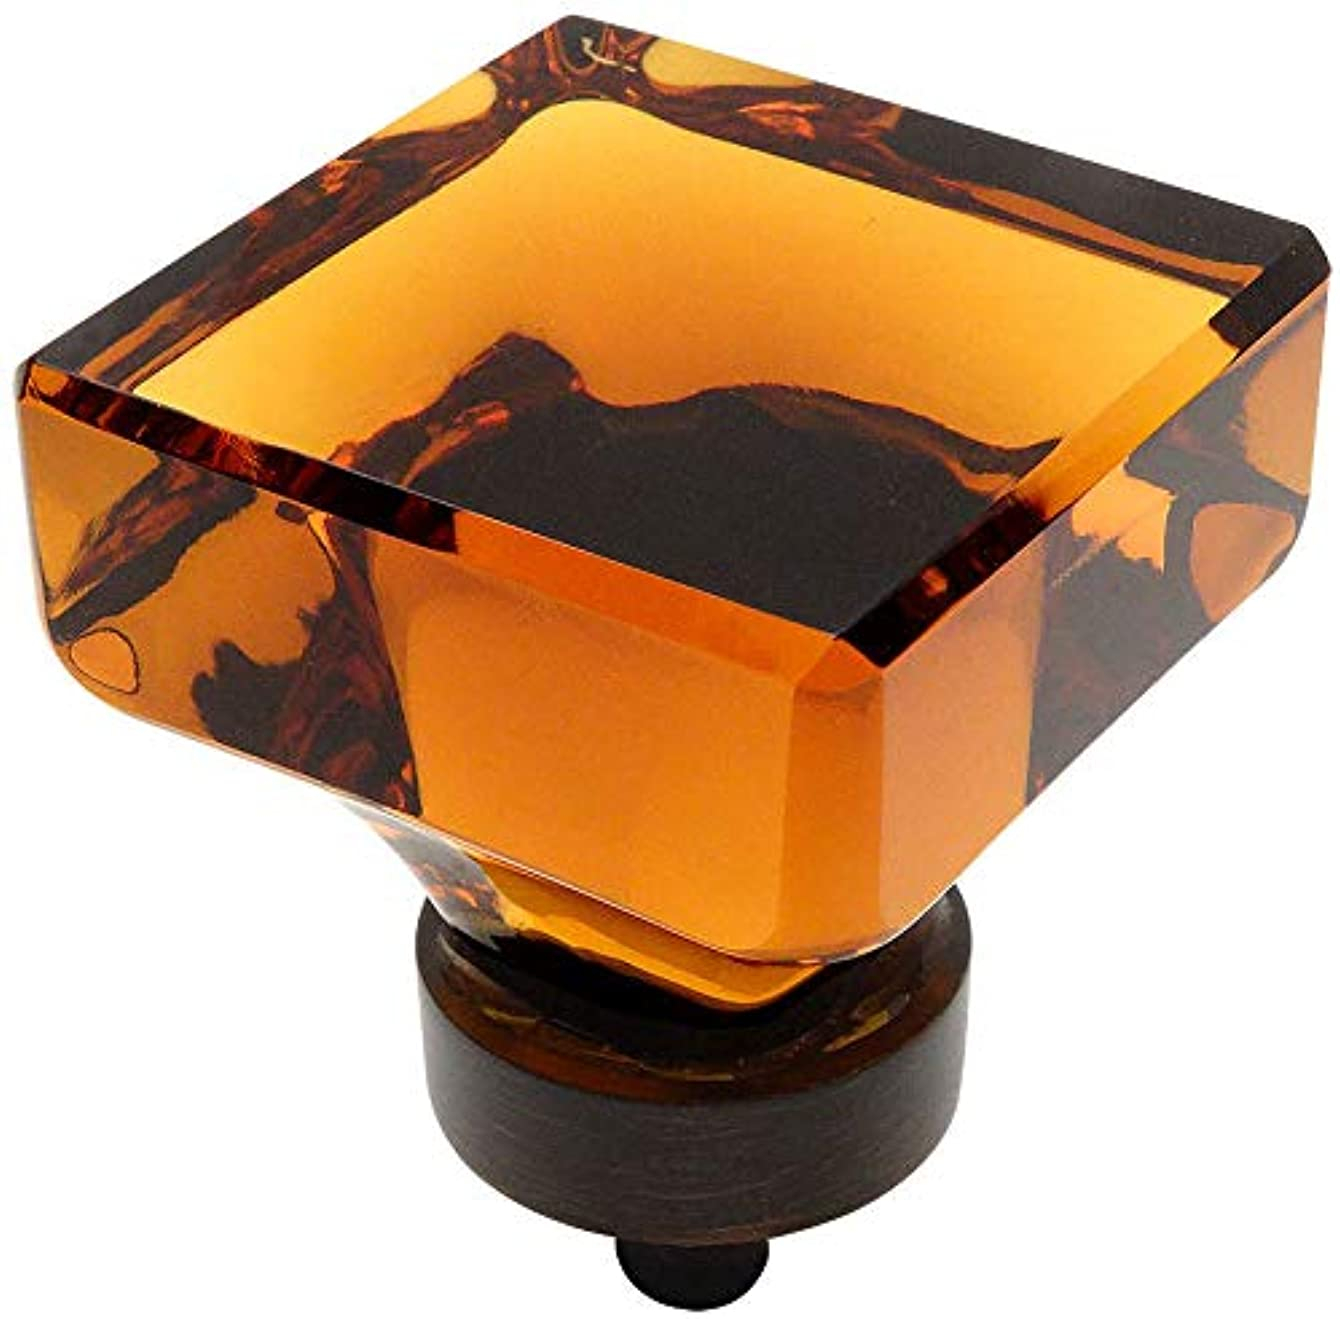 5 Pack - Cosmas 6377ORB-A Oil Rubbed Bronze Cabinet Hardware Square Knob with Amber Glass - 1-3/8